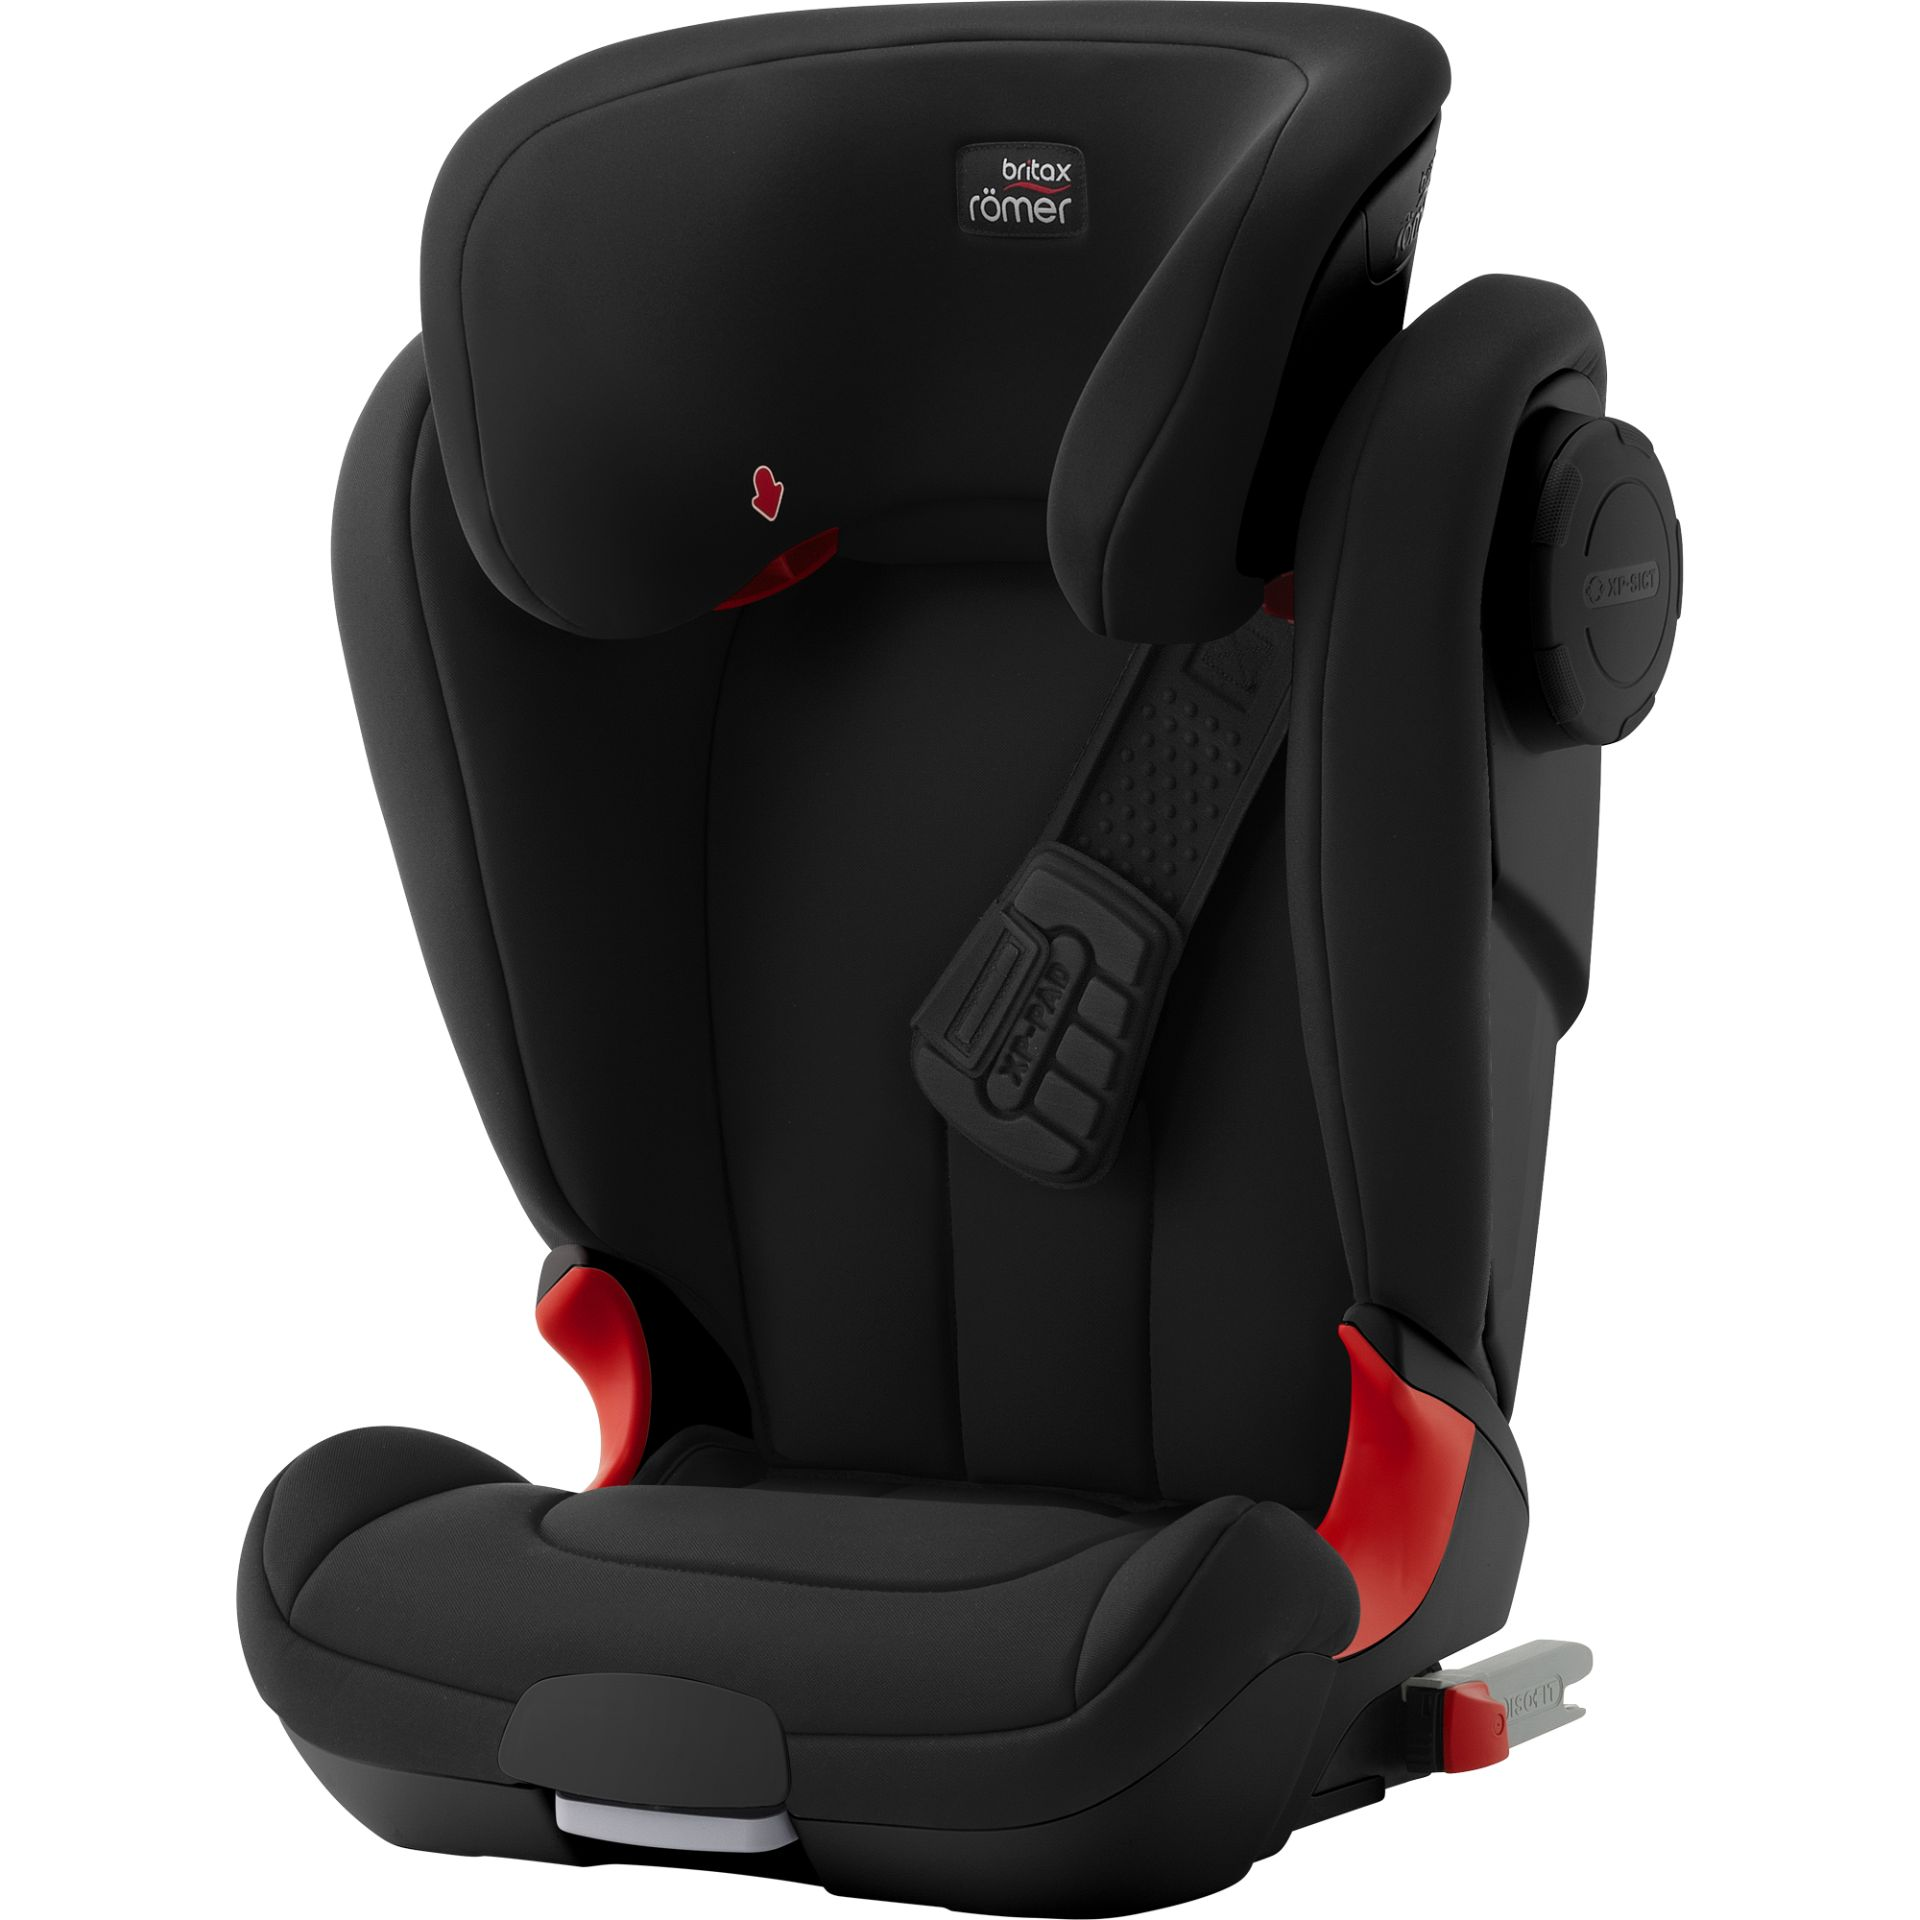 britax r mer car seat kidfix xp sict black series 2018 cosmos black buy at kidsroom car seats. Black Bedroom Furniture Sets. Home Design Ideas